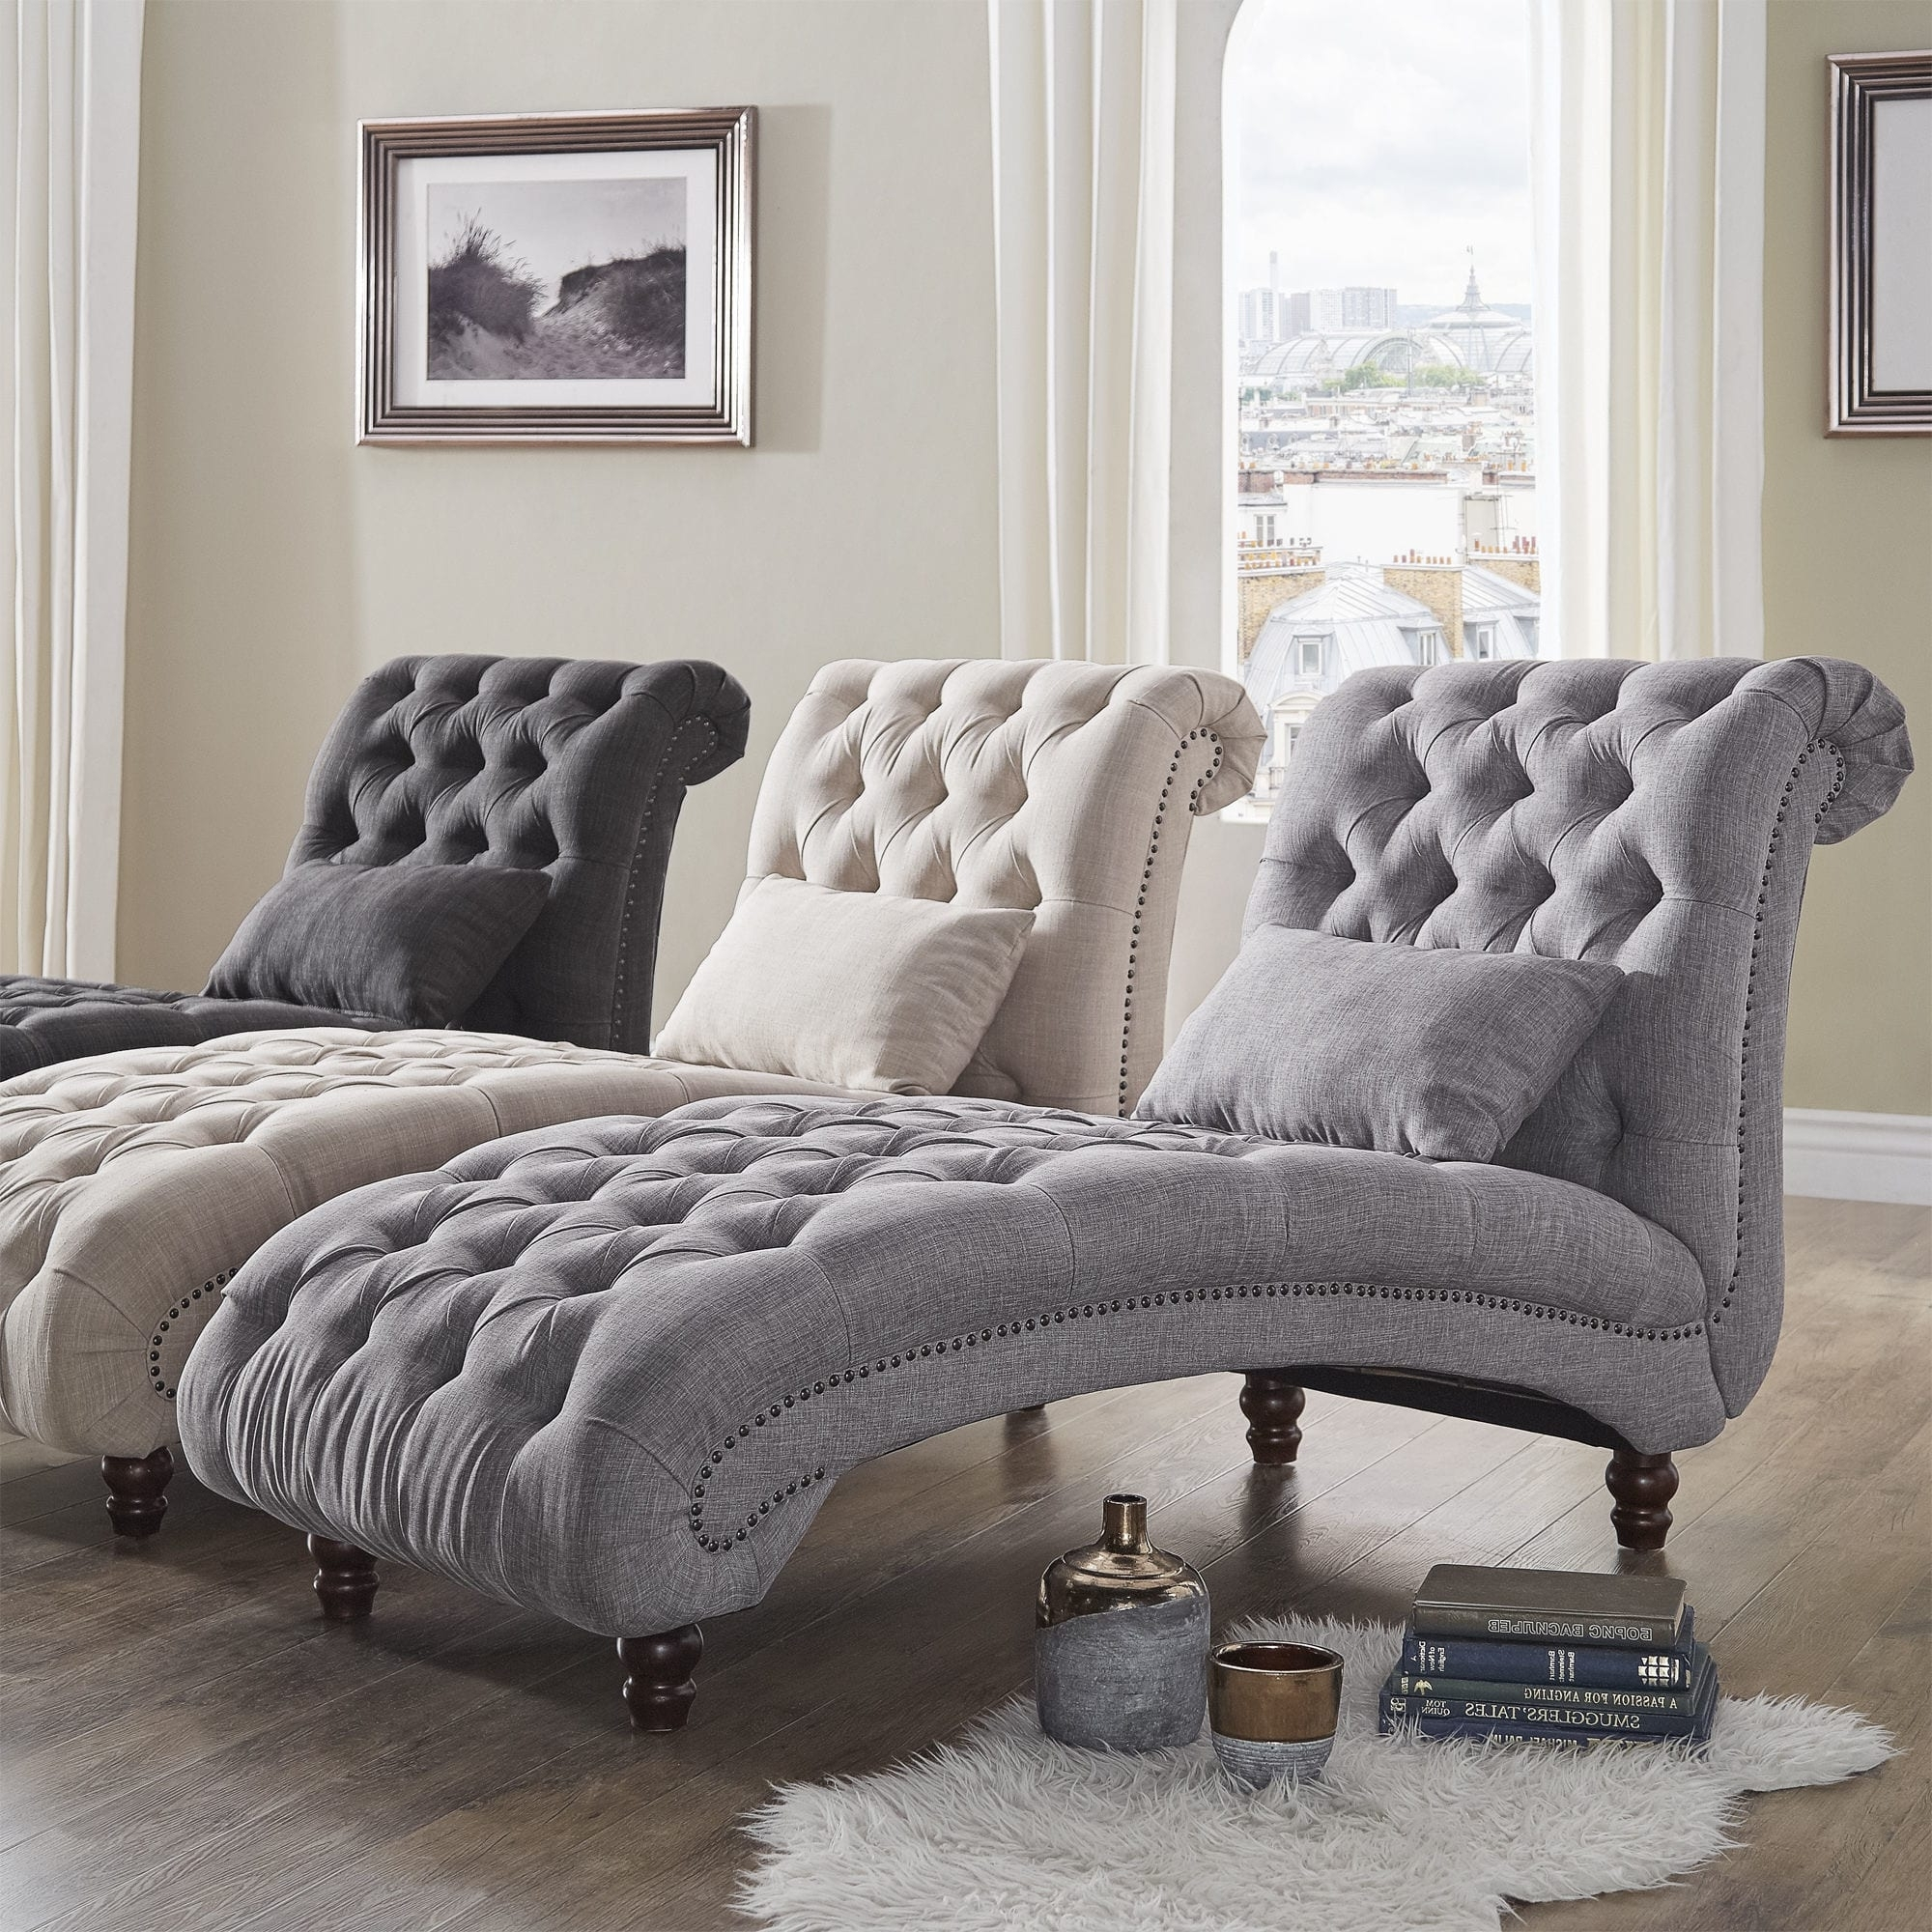 Imposing Showing Gallery Oversizedchaise Lounges Oversized Chaise Lounge Slipcover Oversized Chaise Lounge Ikea Knightsbridge Tufted Oversized Chaise Loungeinspire Q Artisan Oversized Chaise Lounges furniture Big Chaise Lounge